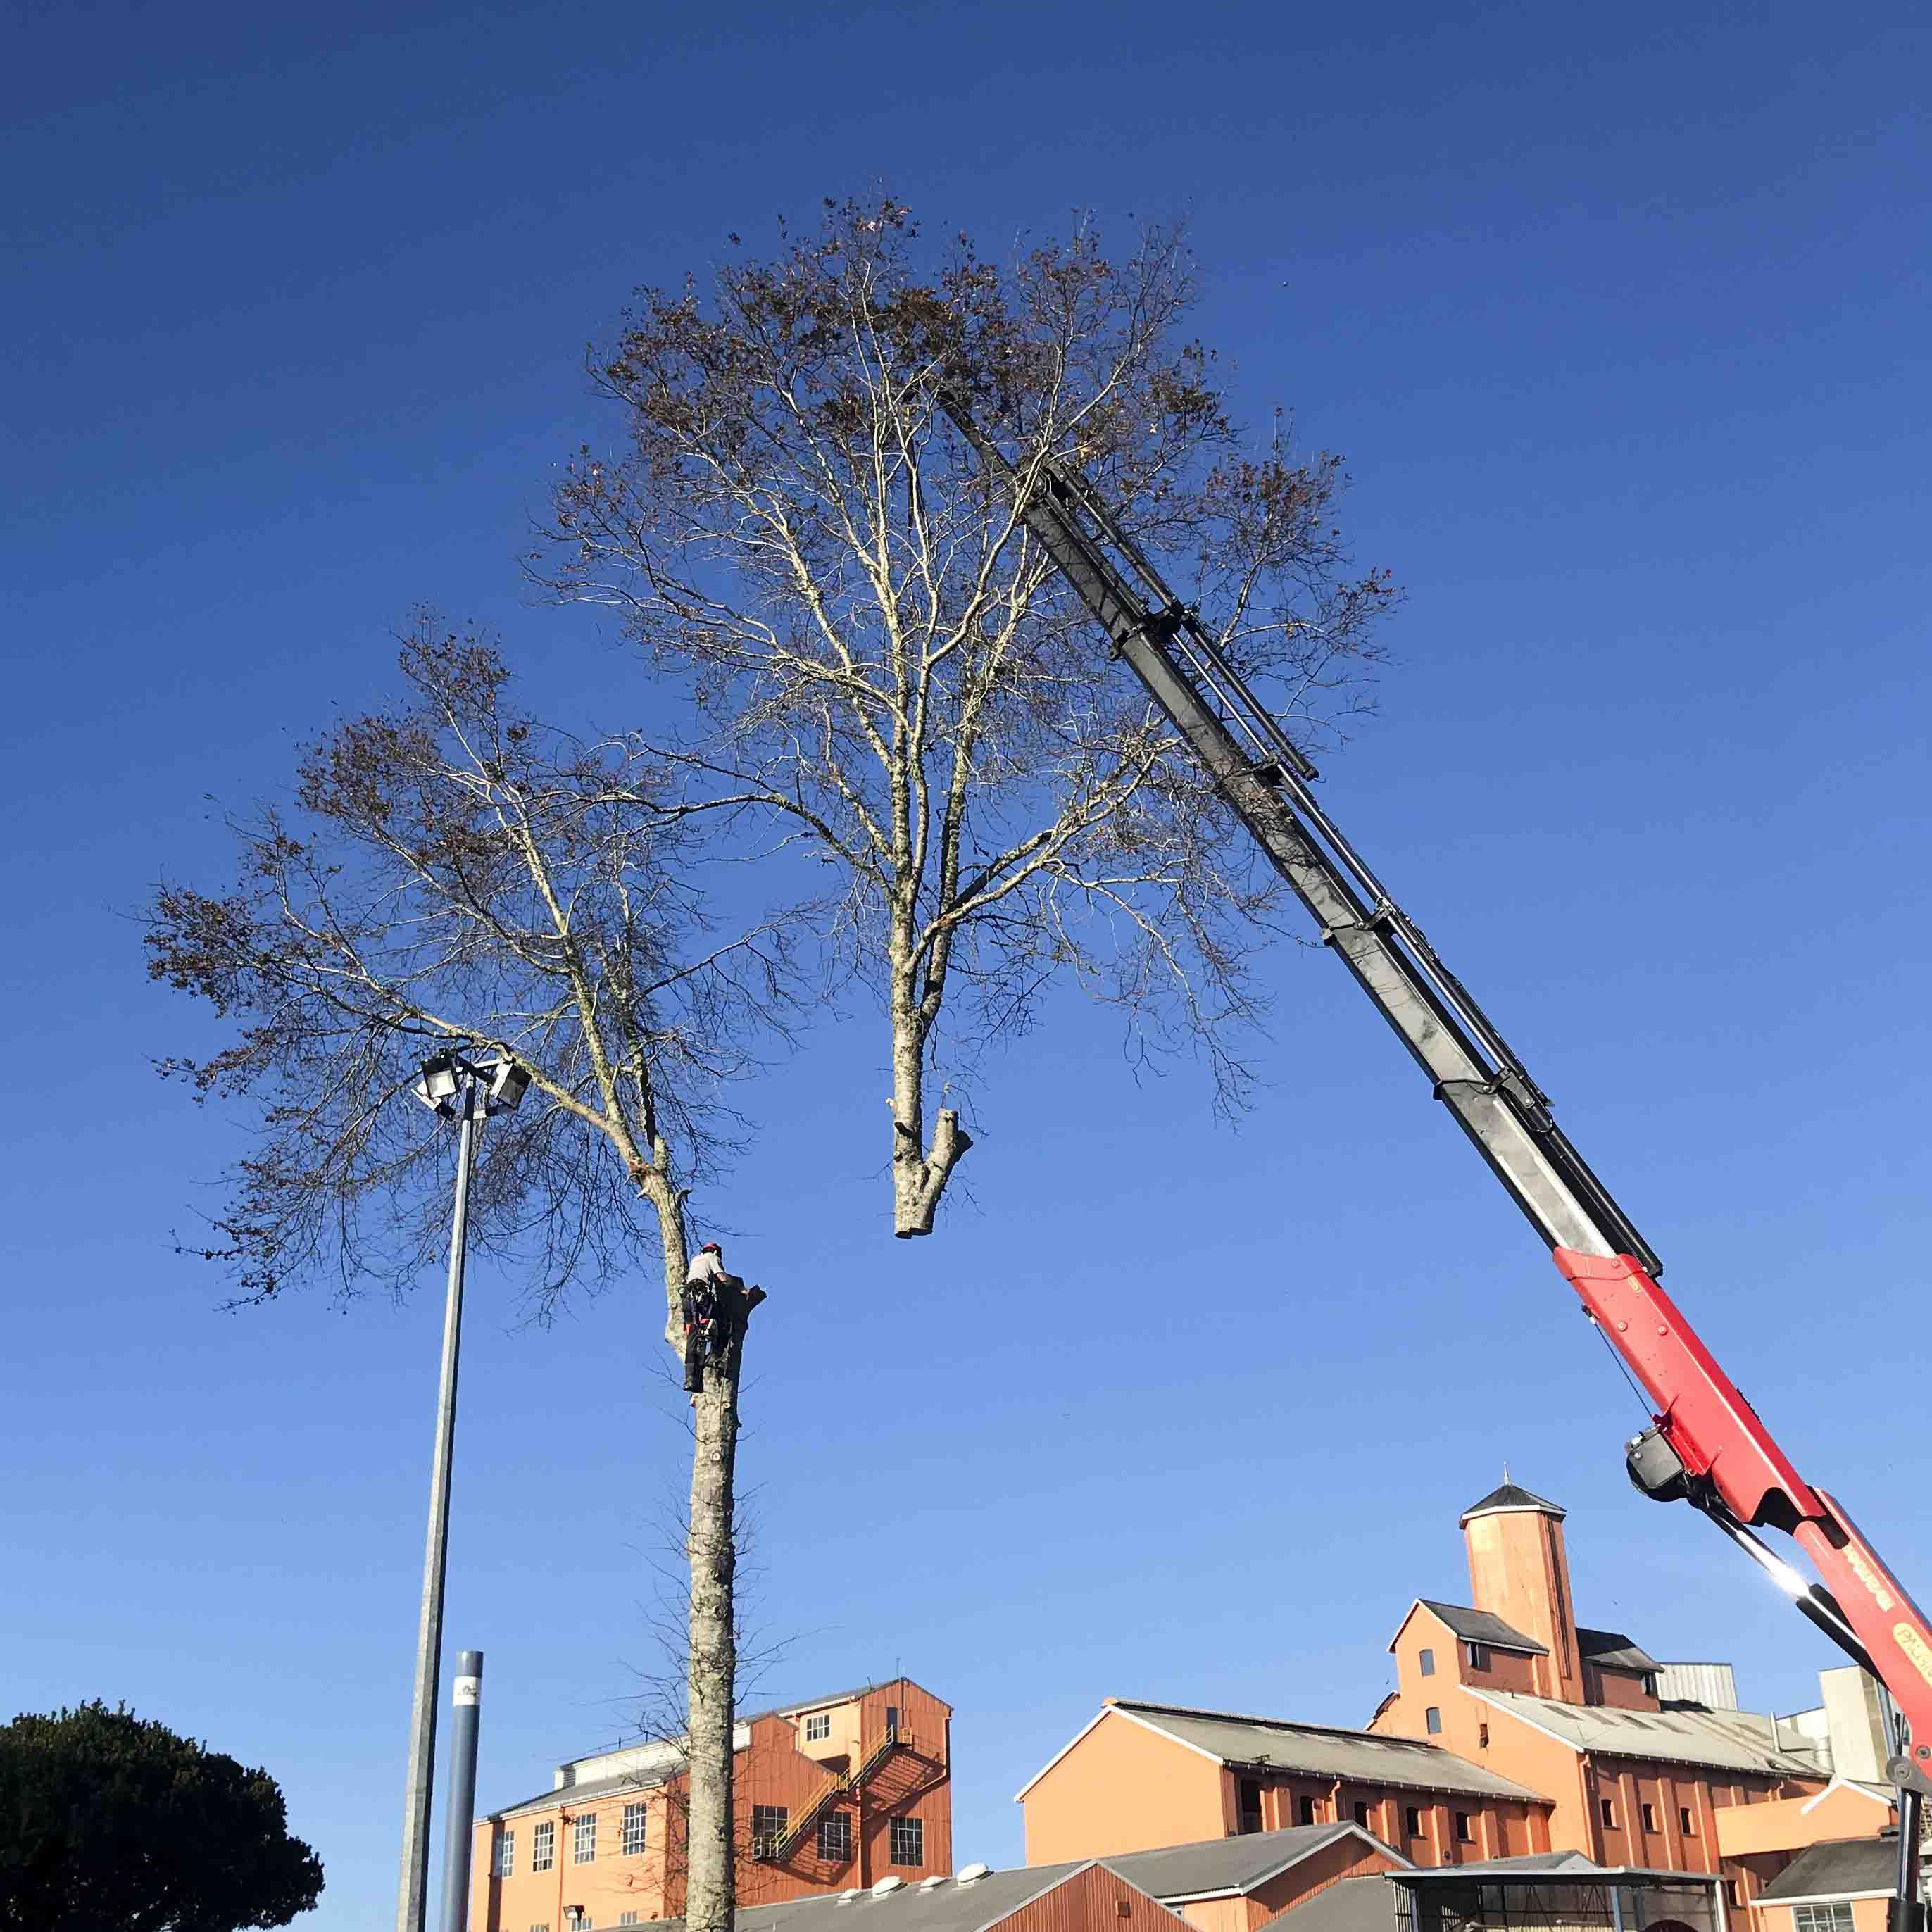 Arborist and crane removing large tree in sections.